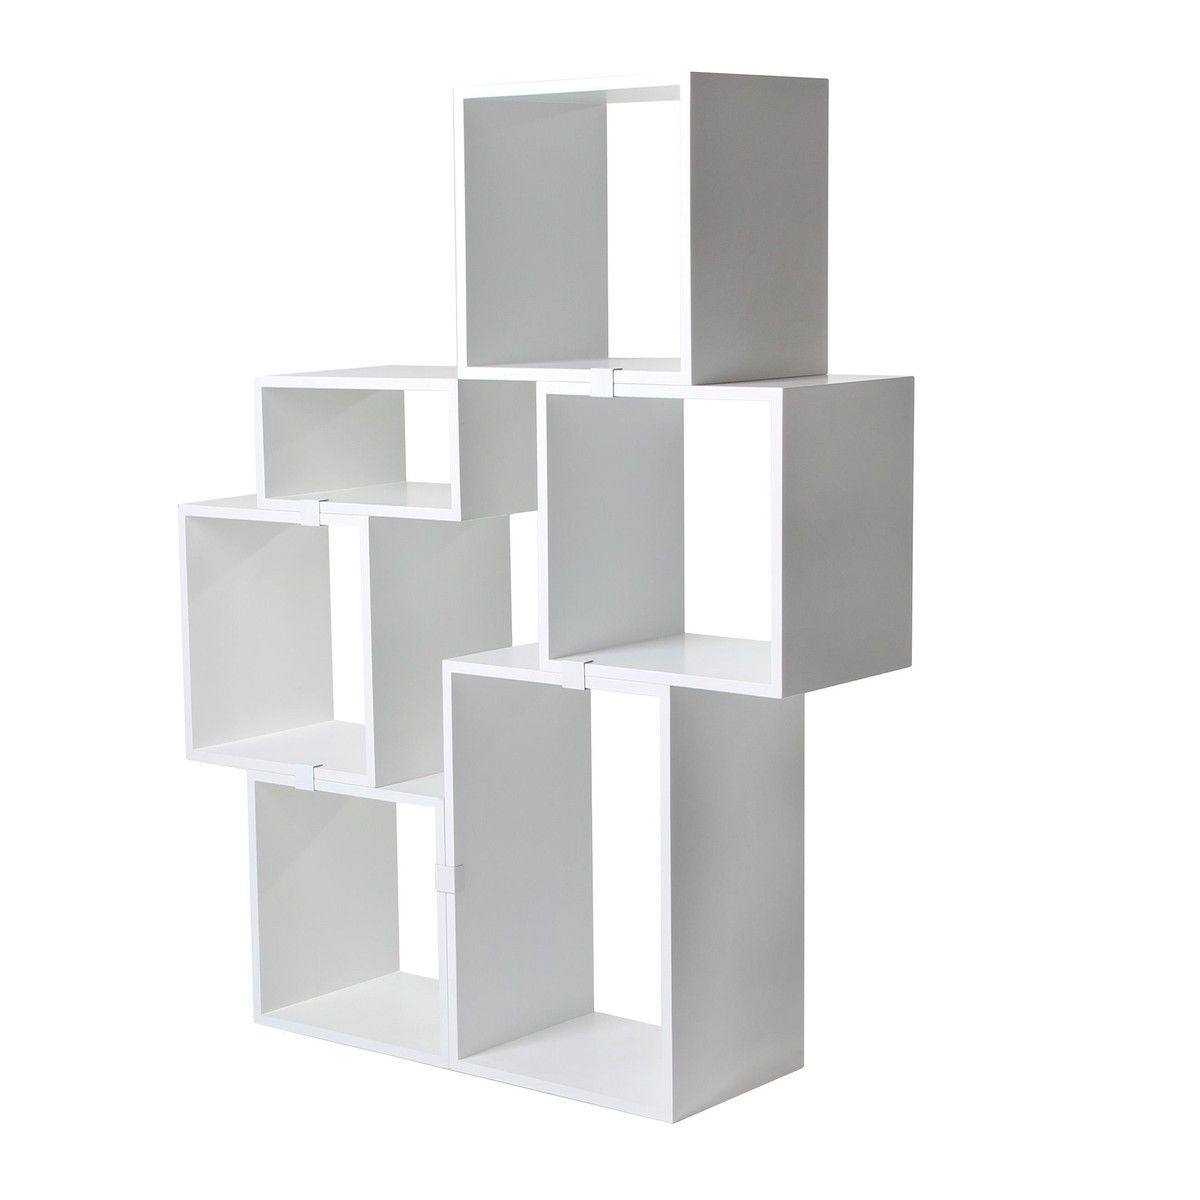 Muuto Regal muuto stacked regal einzelfächer weiß muuto ambientedirect com